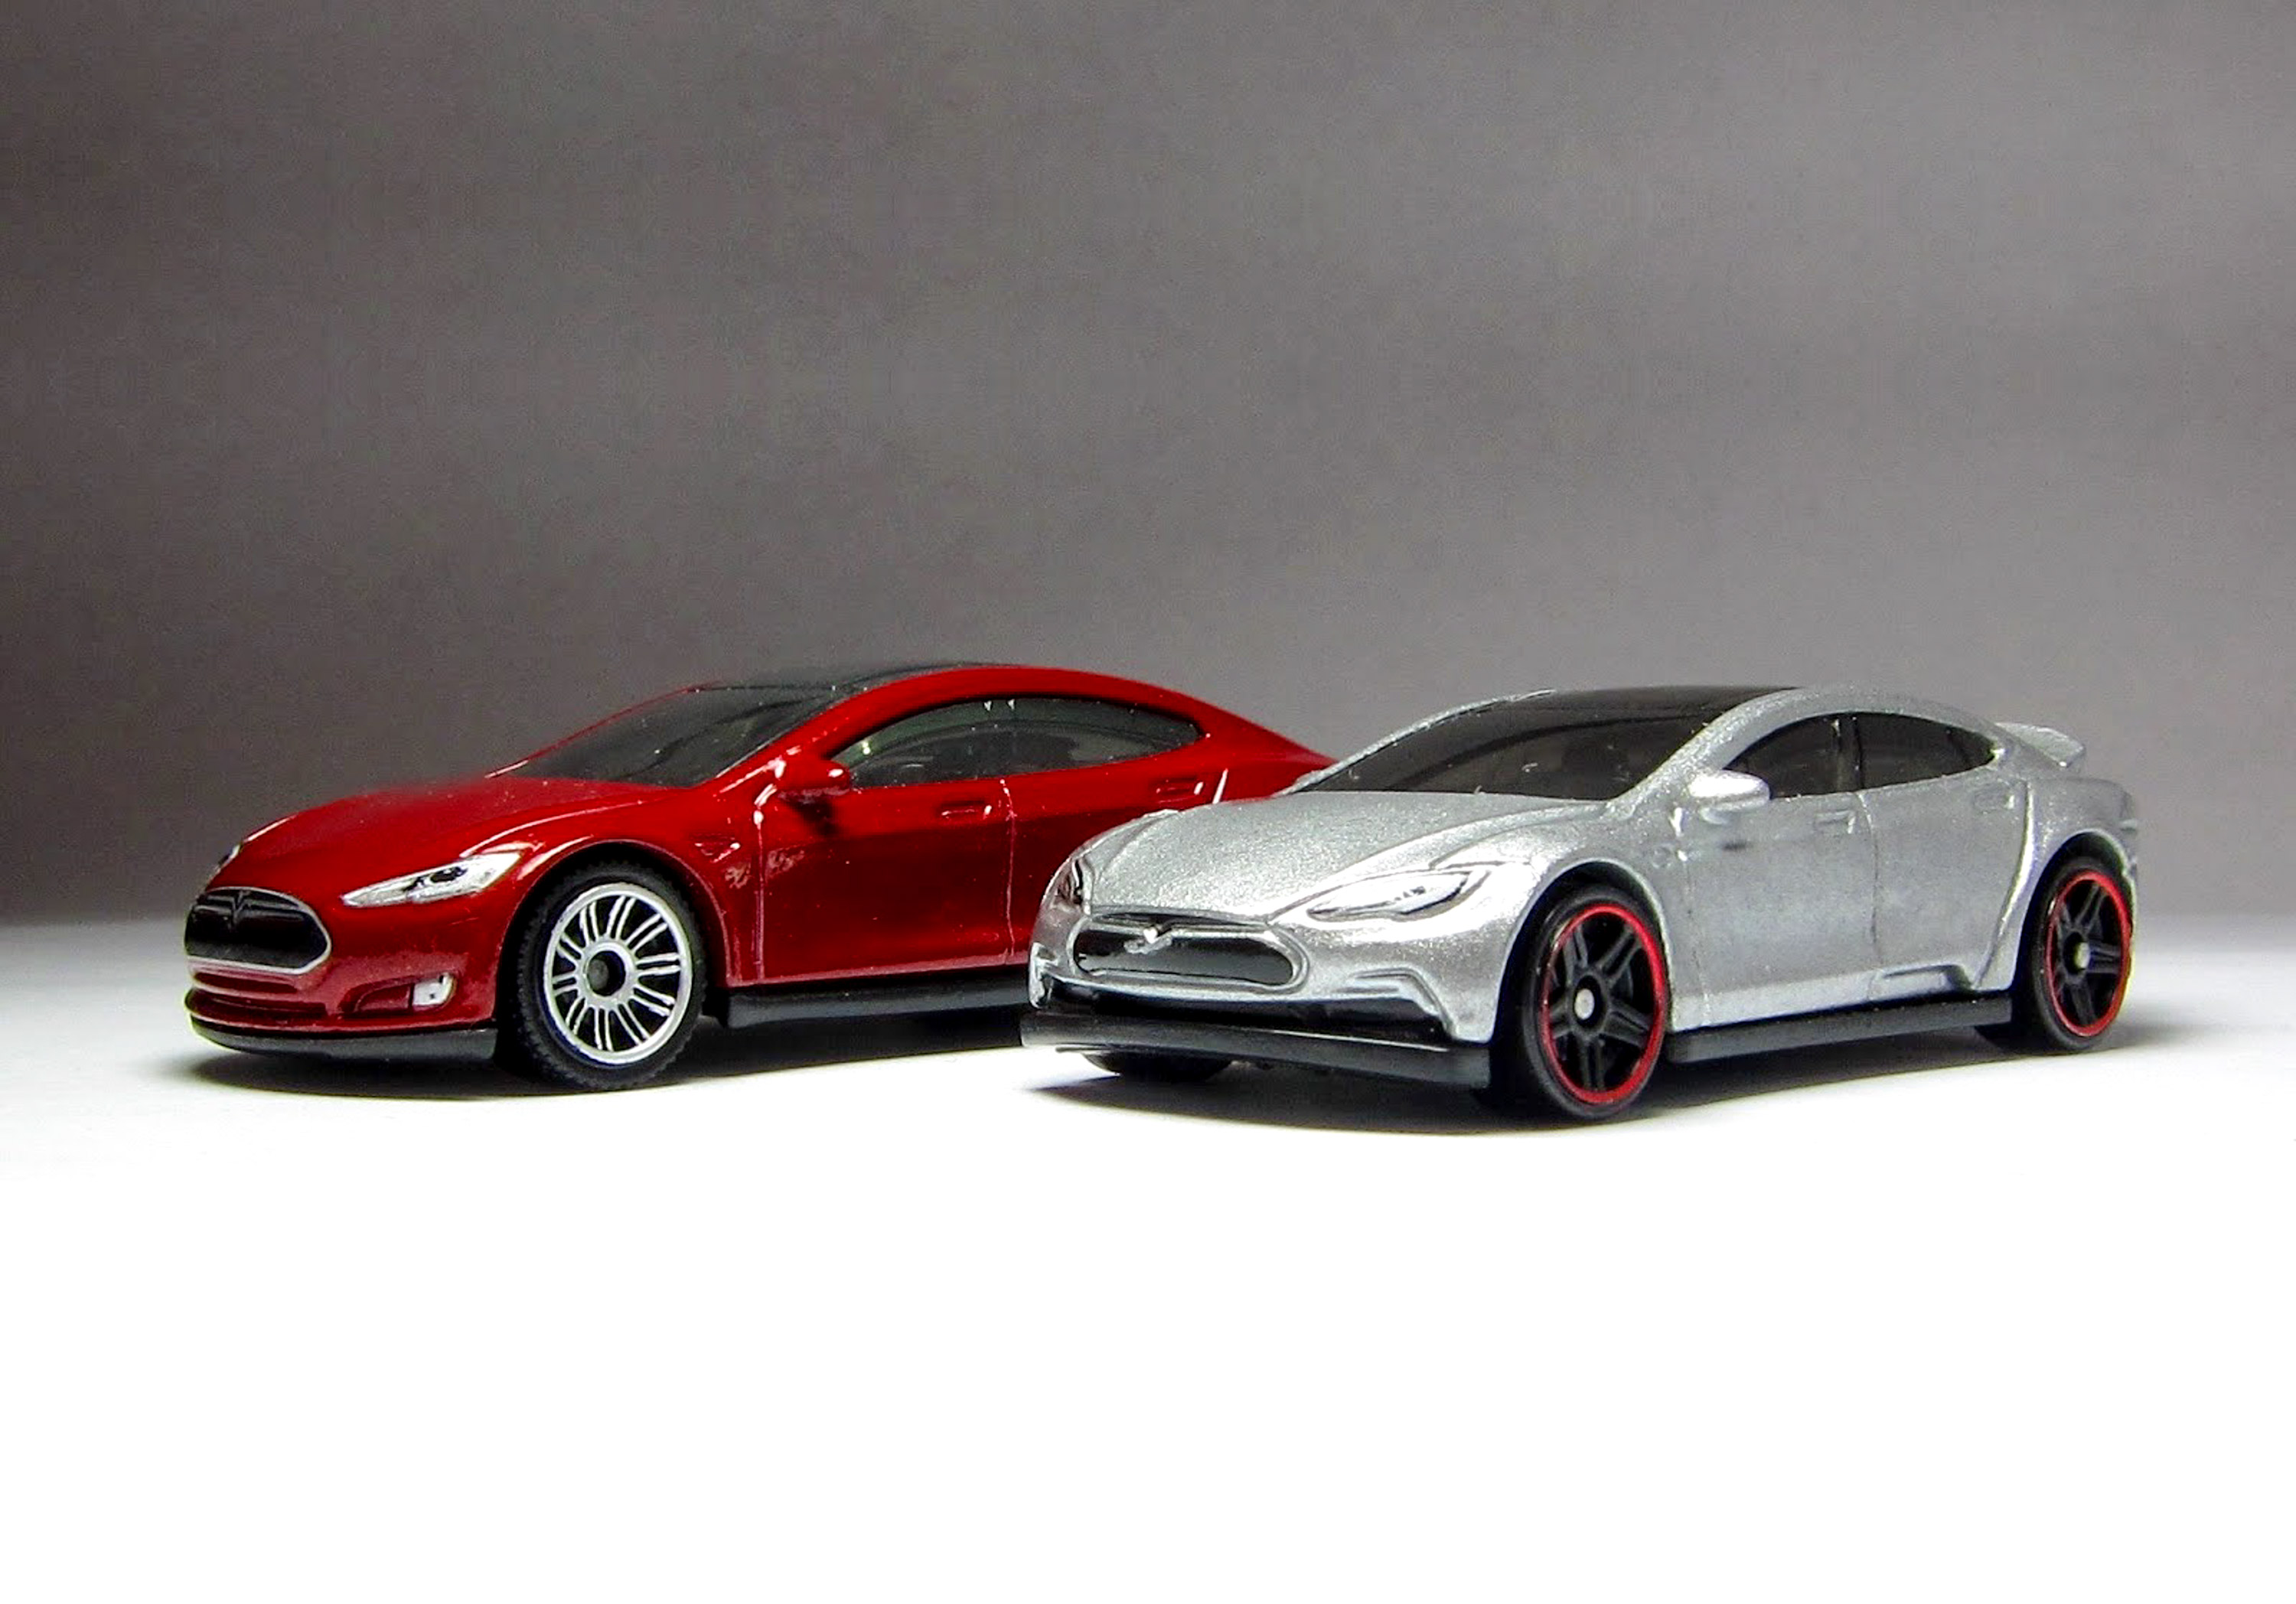 Teslas Newest 109 Model Is Truly Affordable Thanks To Hot Wheels Hotwheels Datsun 620 Red Tesla 1